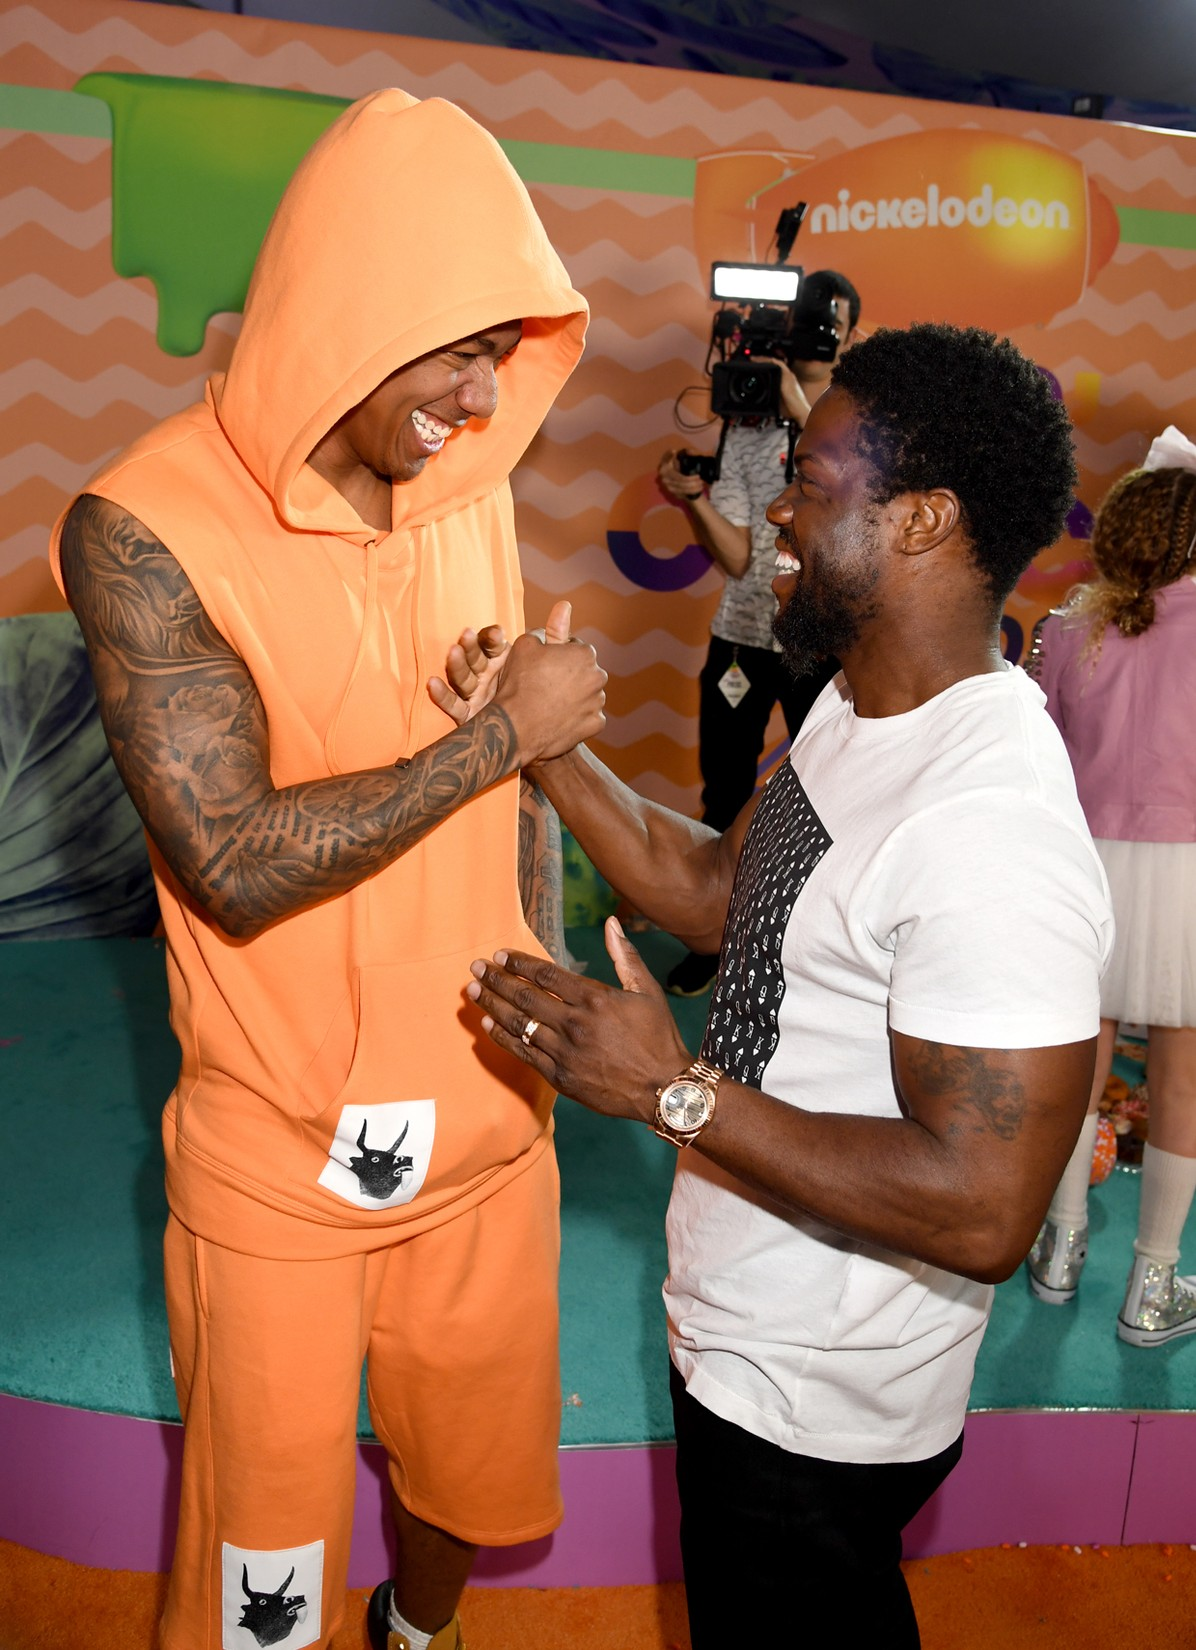 Nick Cannon and Kevin Hart at Nickelodeon's 2017 Kids' Choice Awards at USC Galen Center on March 11, 2017 in Los Angeles.